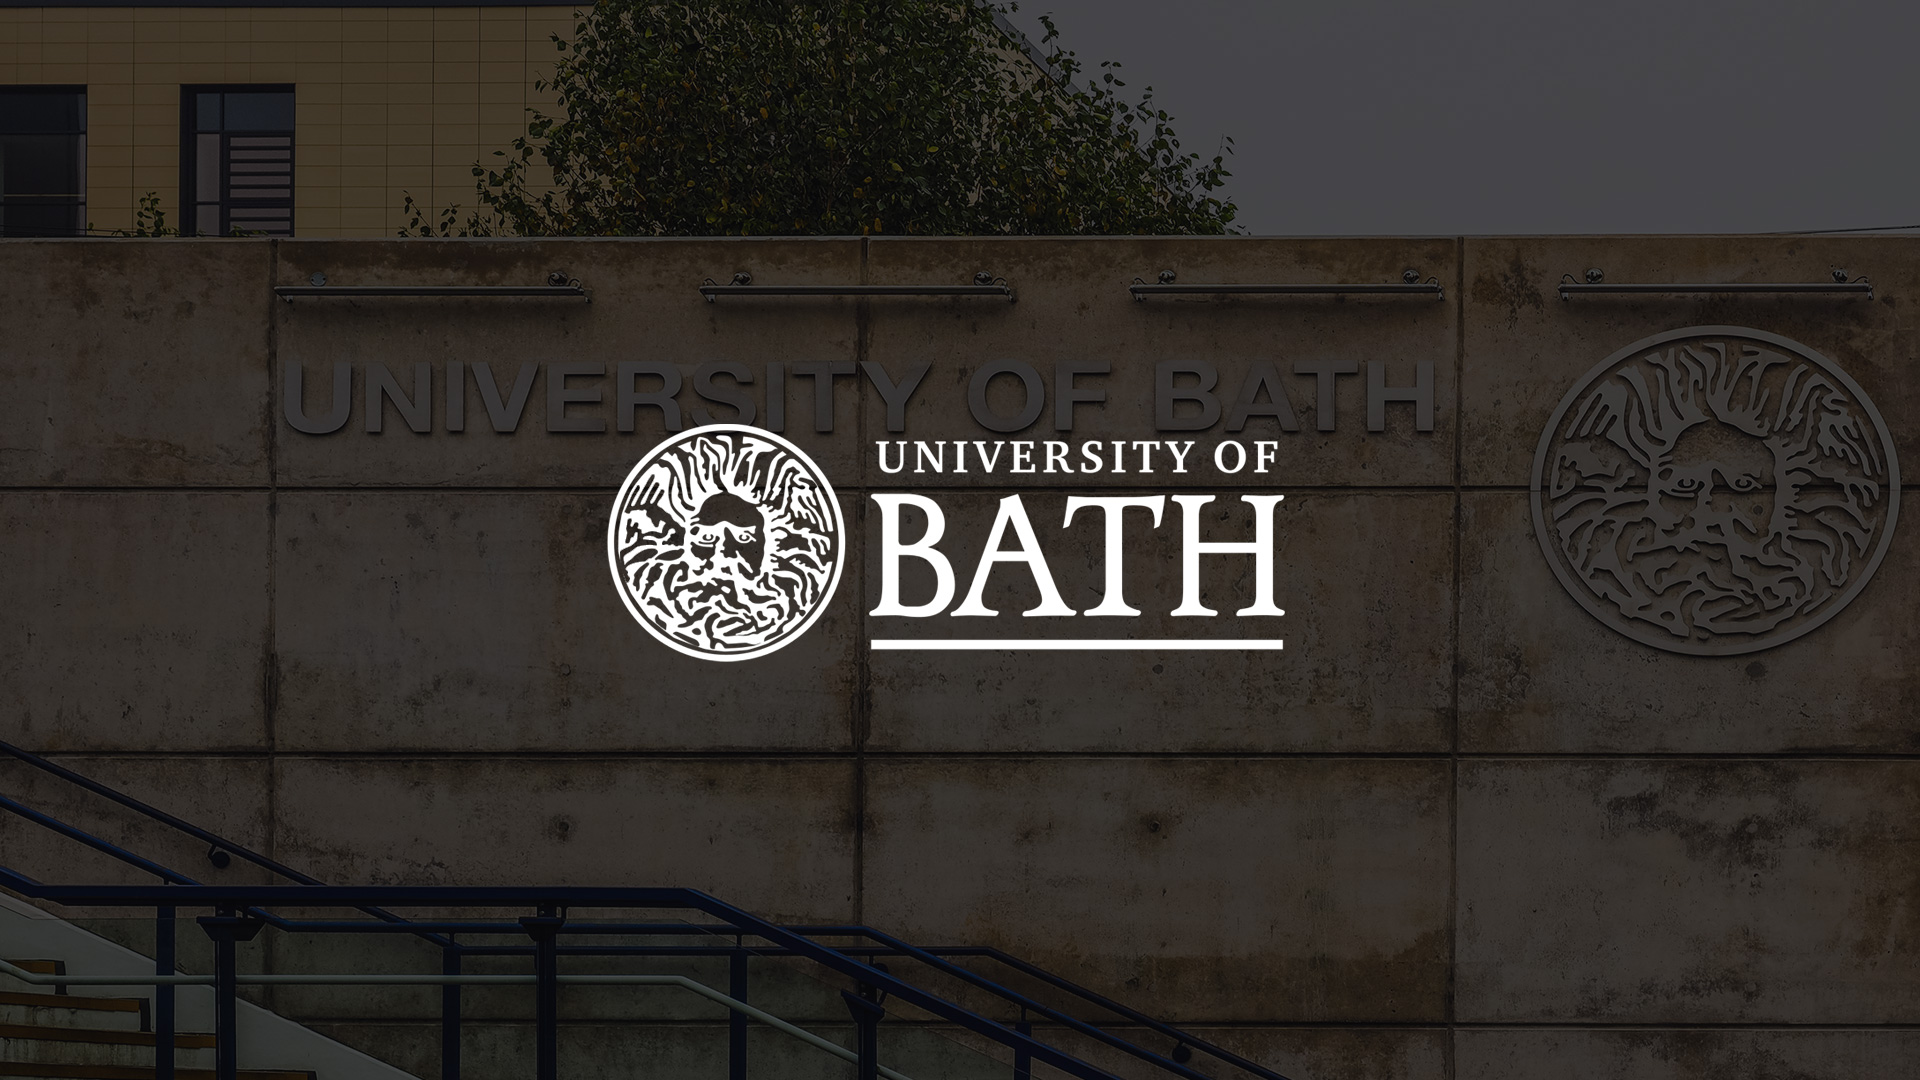 University of Bath: Universities